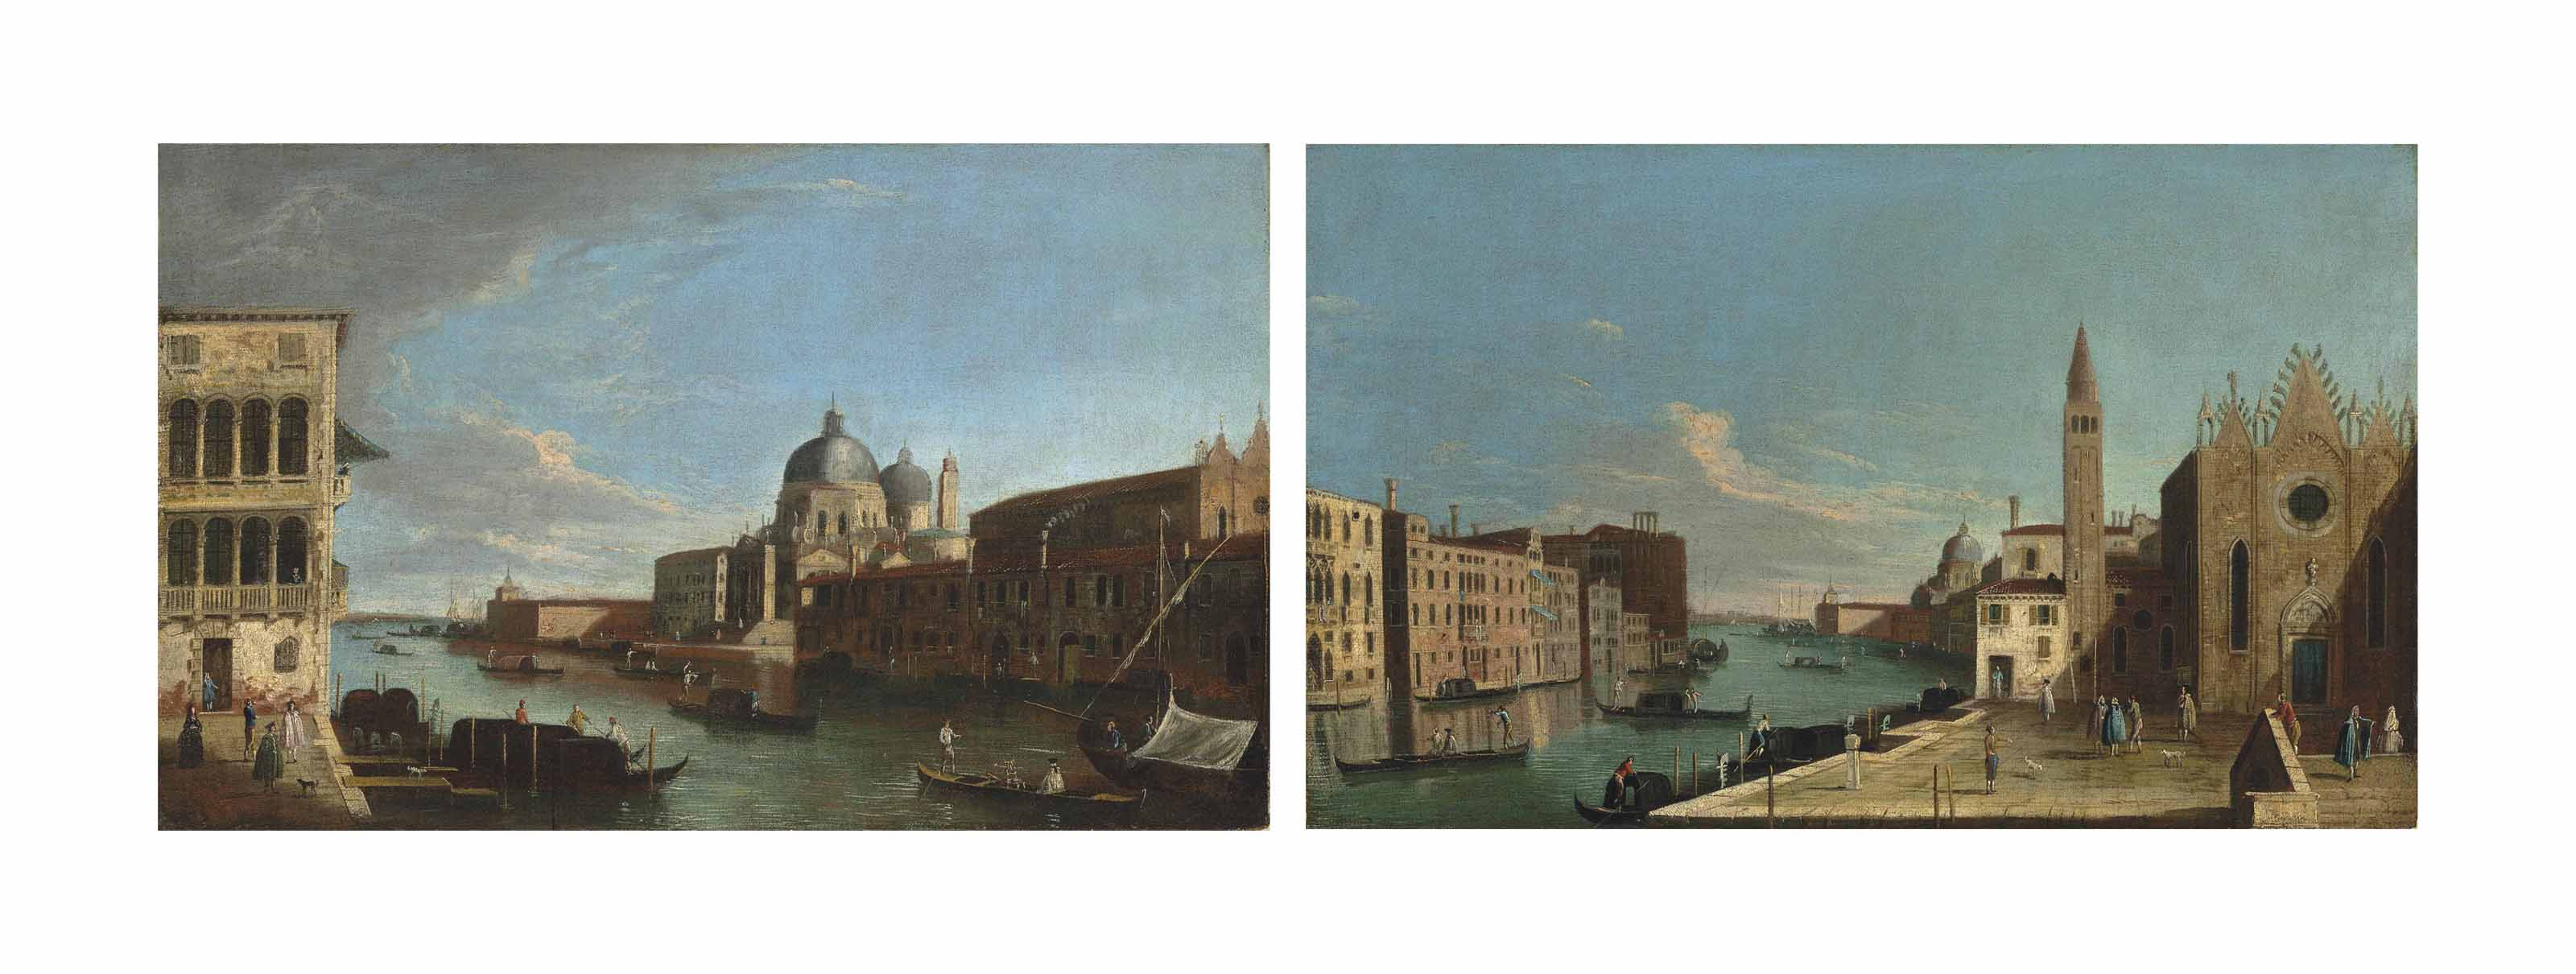 The Grand Canal, Venice, looking towards Santa Maria della Salute with the Punta della Dogana; and The Grand Canal, Venice, looking east with the Scuola della Carità